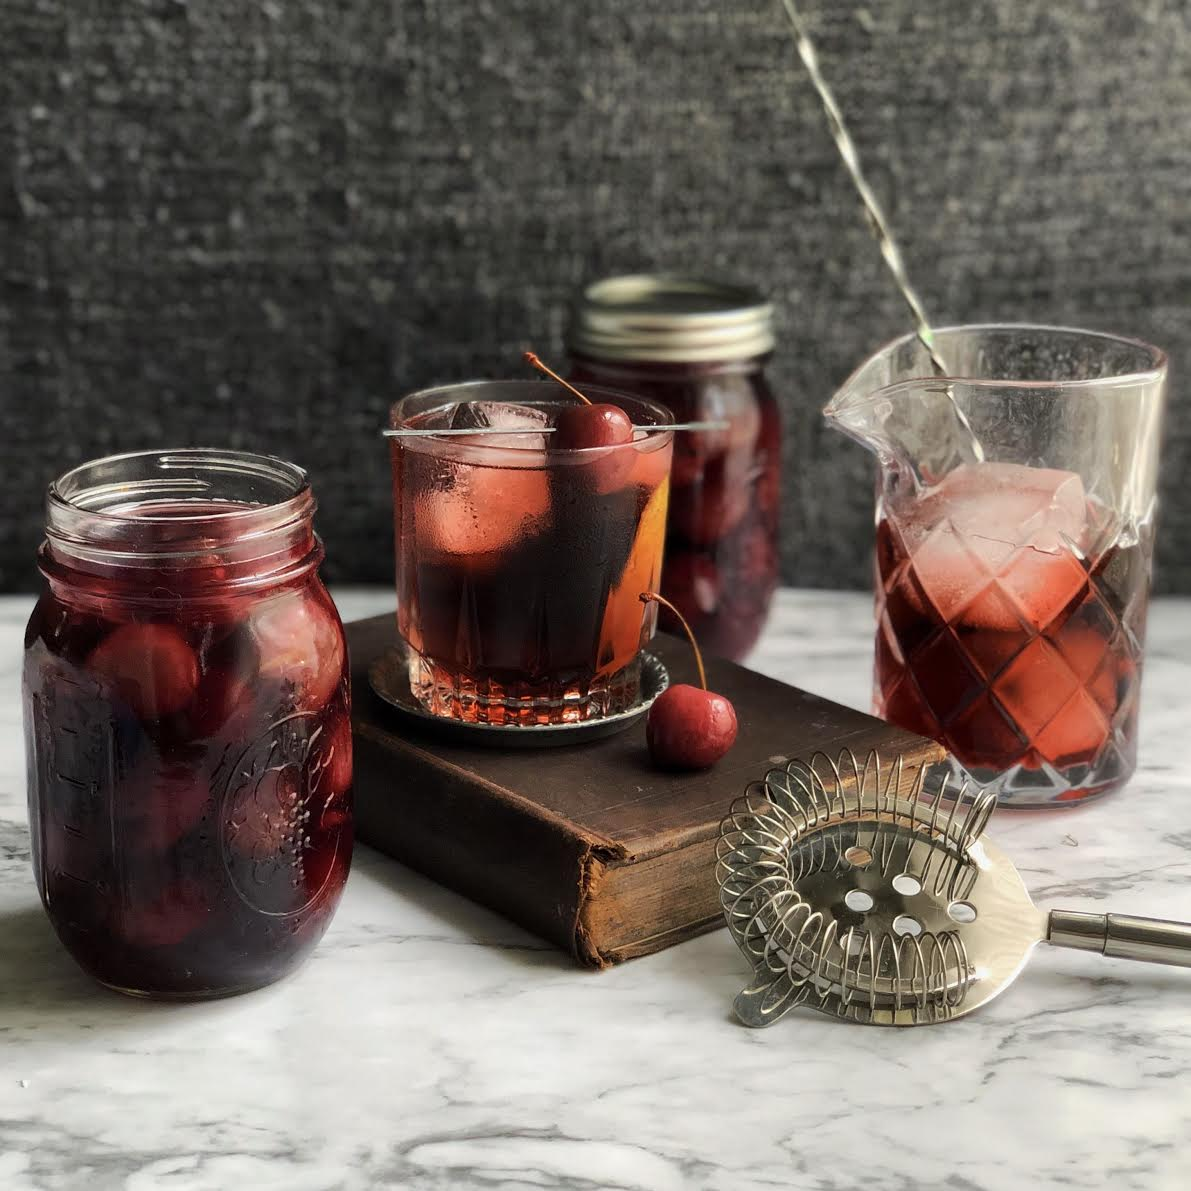 Homemade maraschino cherries and cherry Negroni cocktail. (Dylan Simmons)